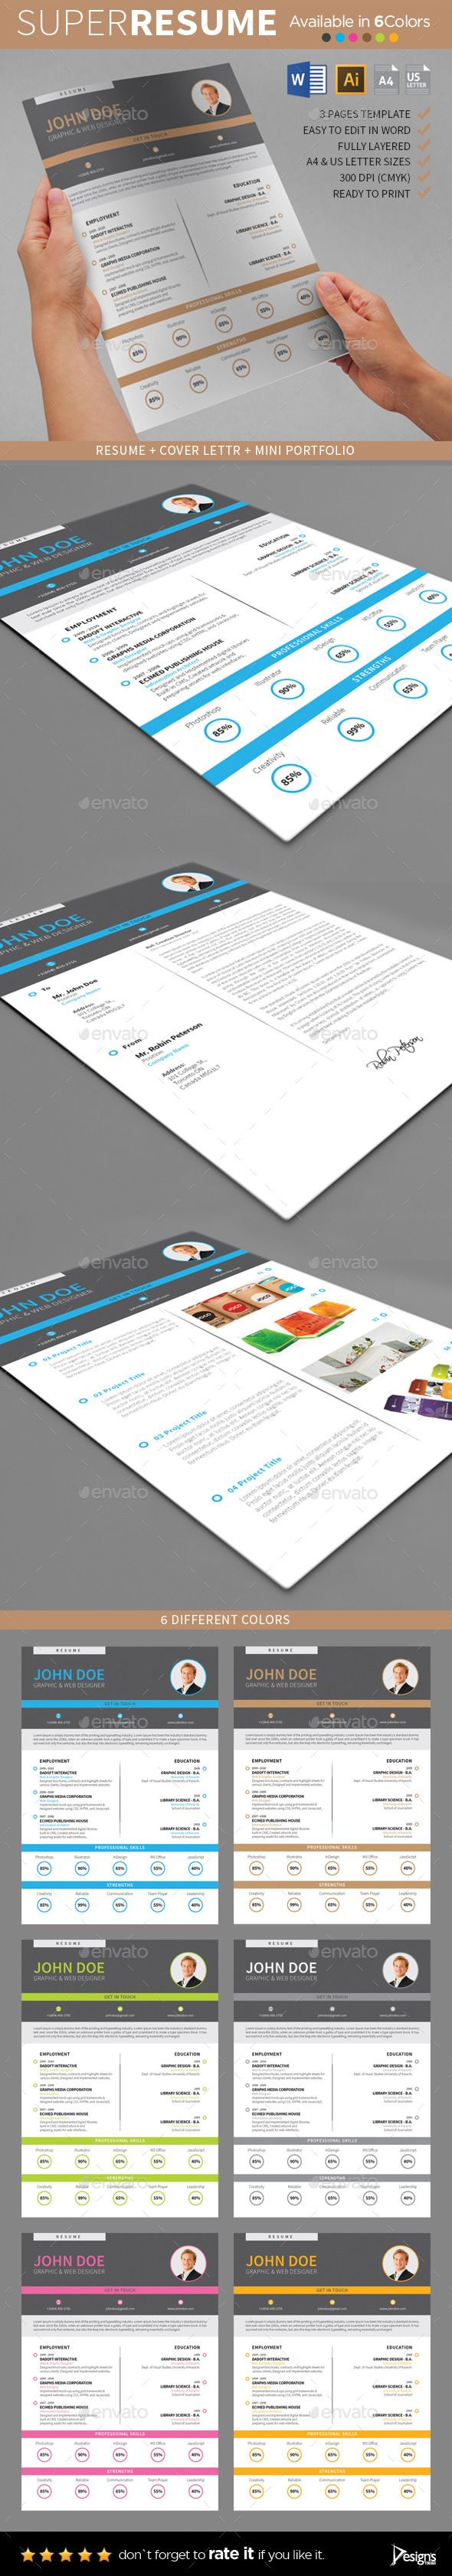 Resume | Template, Simple resume template and Cv resume template